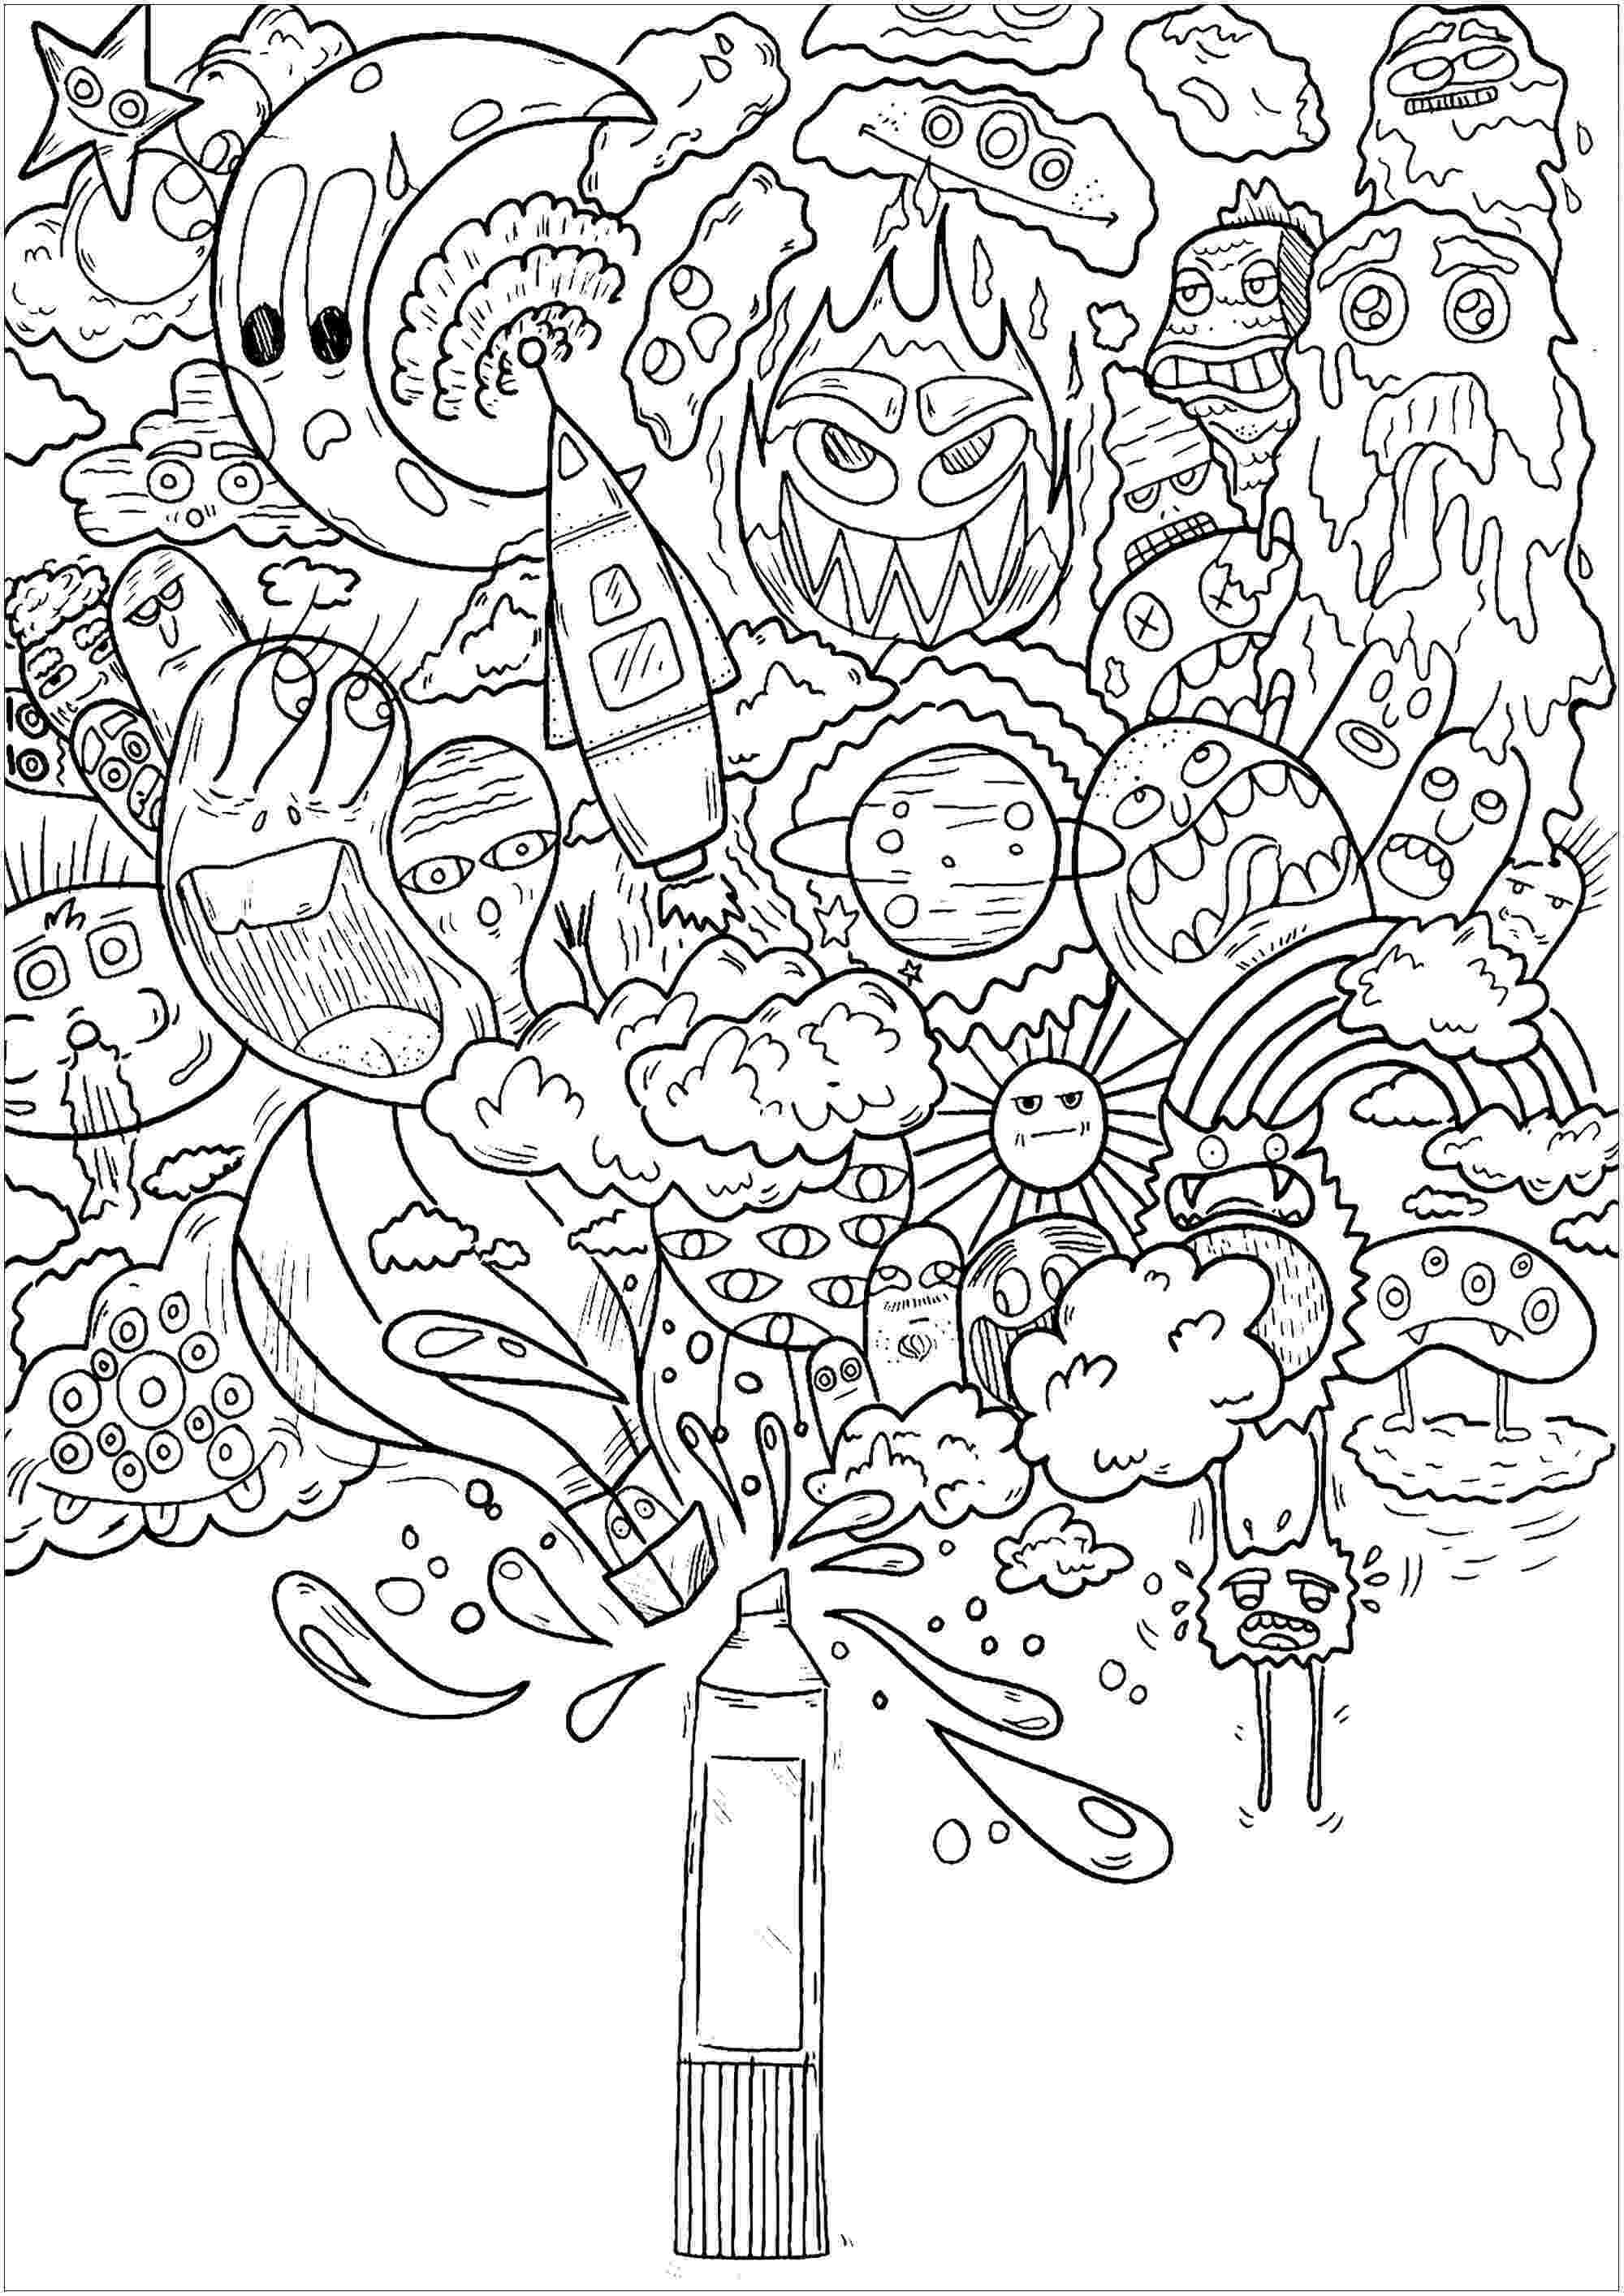 doodle art colouring free coloring pages doodle art alley art doodle colouring